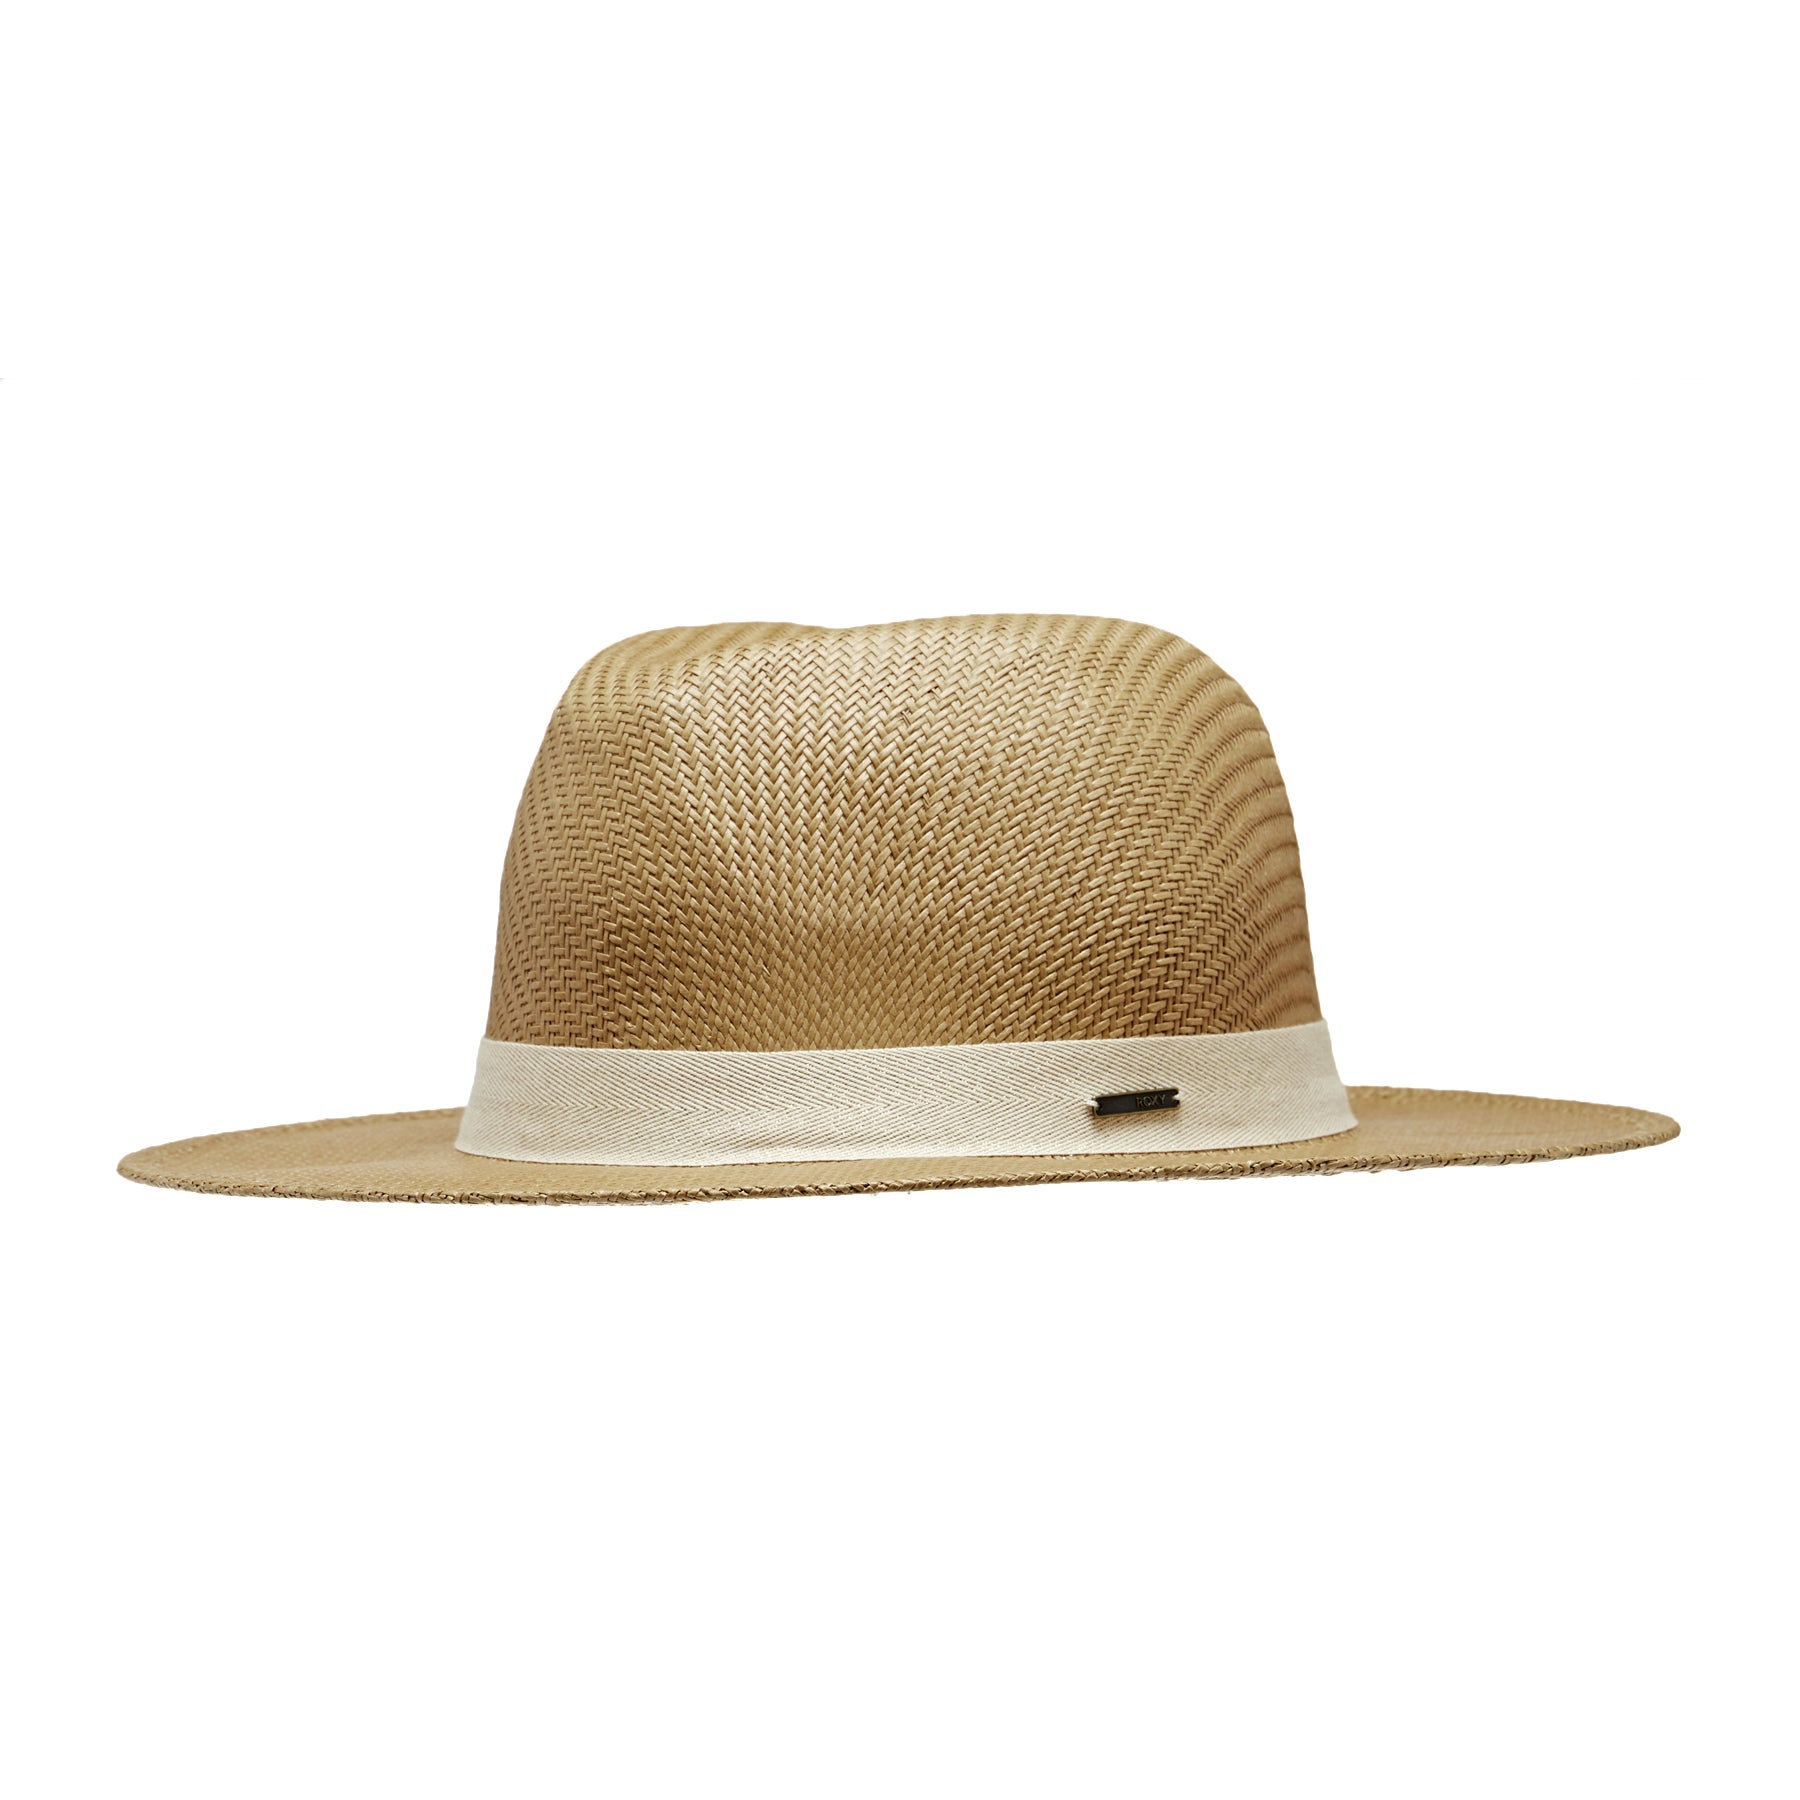 Roxy Here We Go Womens Hat - Natural